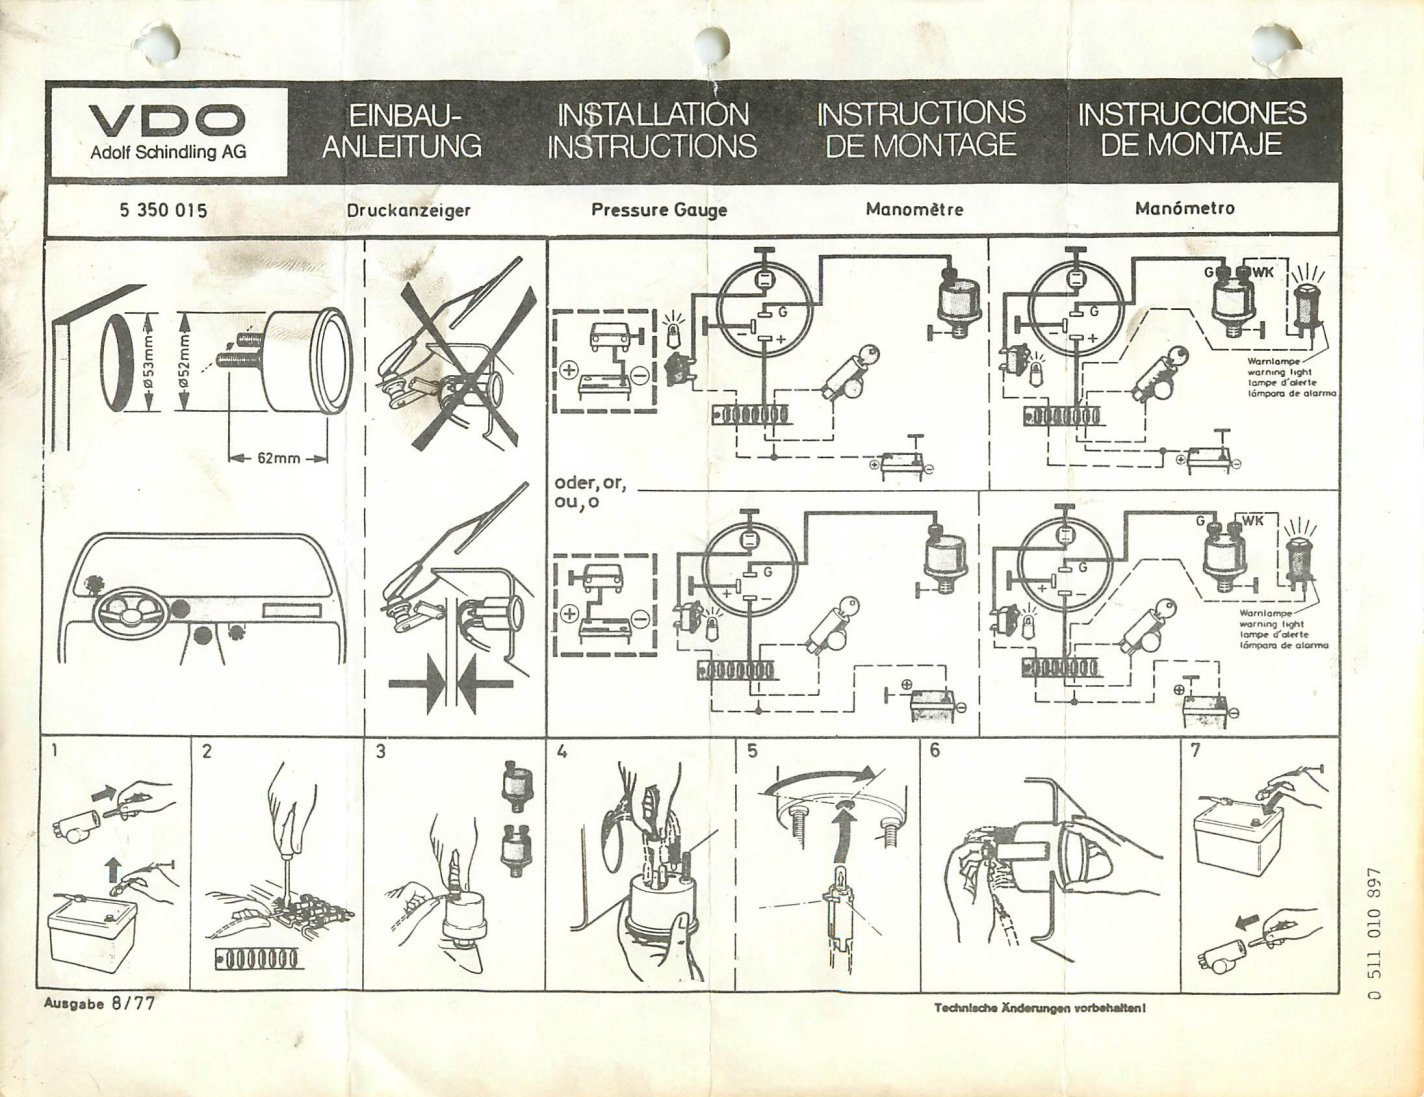 Vdo Trim Gauge Wiring Diagram Free Download Diagrams Cockpit Fuel Oil Installation Readingrat Net Pressure At Voltmeter